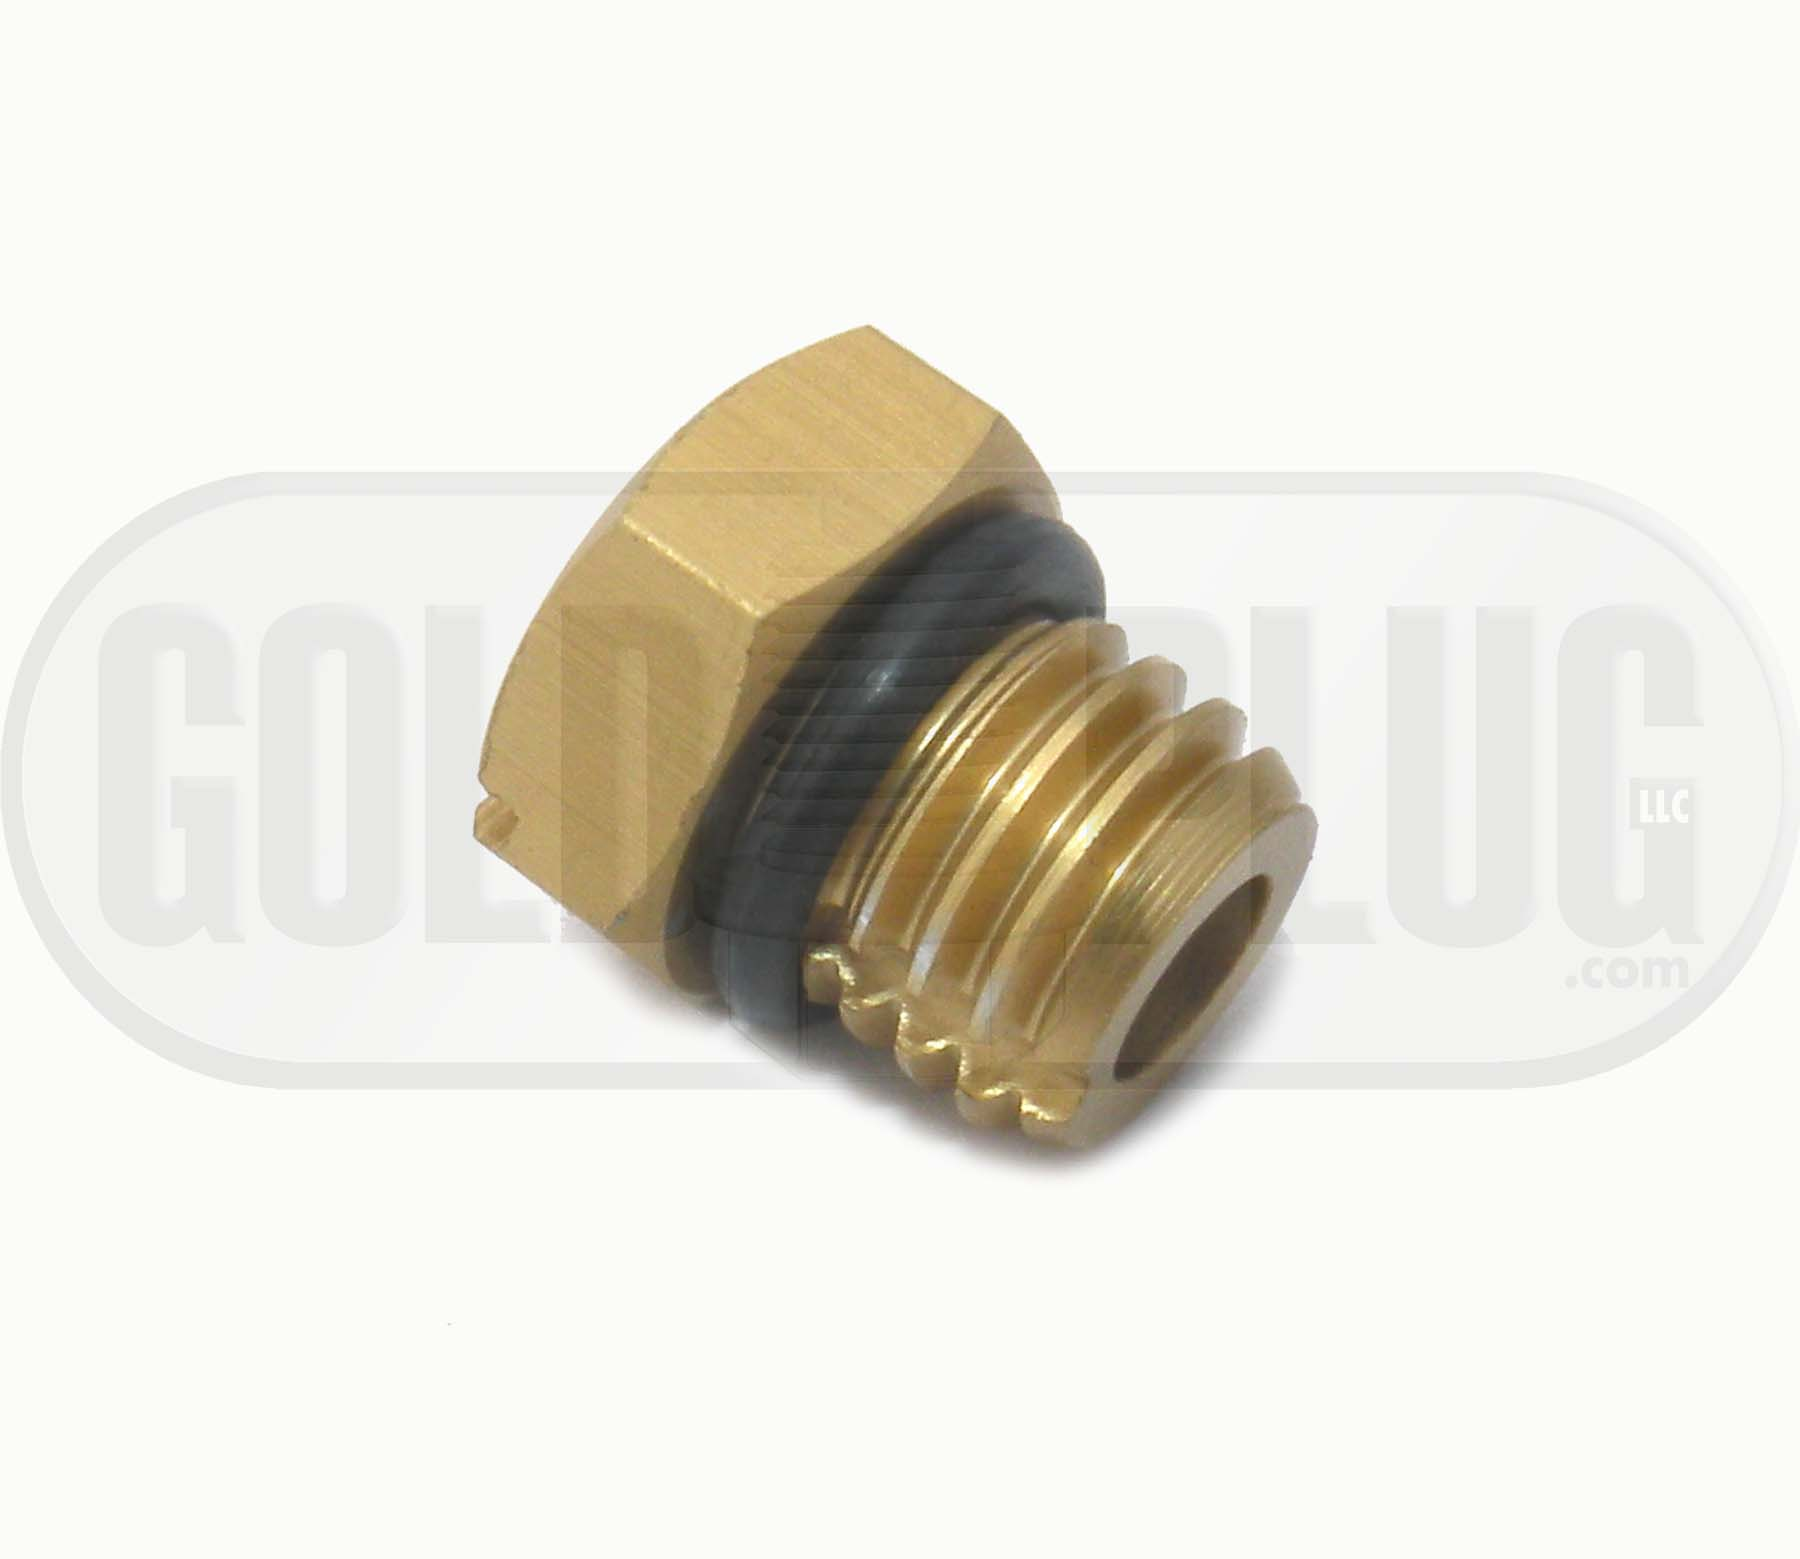 Duramax Diesel Fuel Bleeder Screw Gold Plug Llc Magnetic Drain Plugs Filter Housing